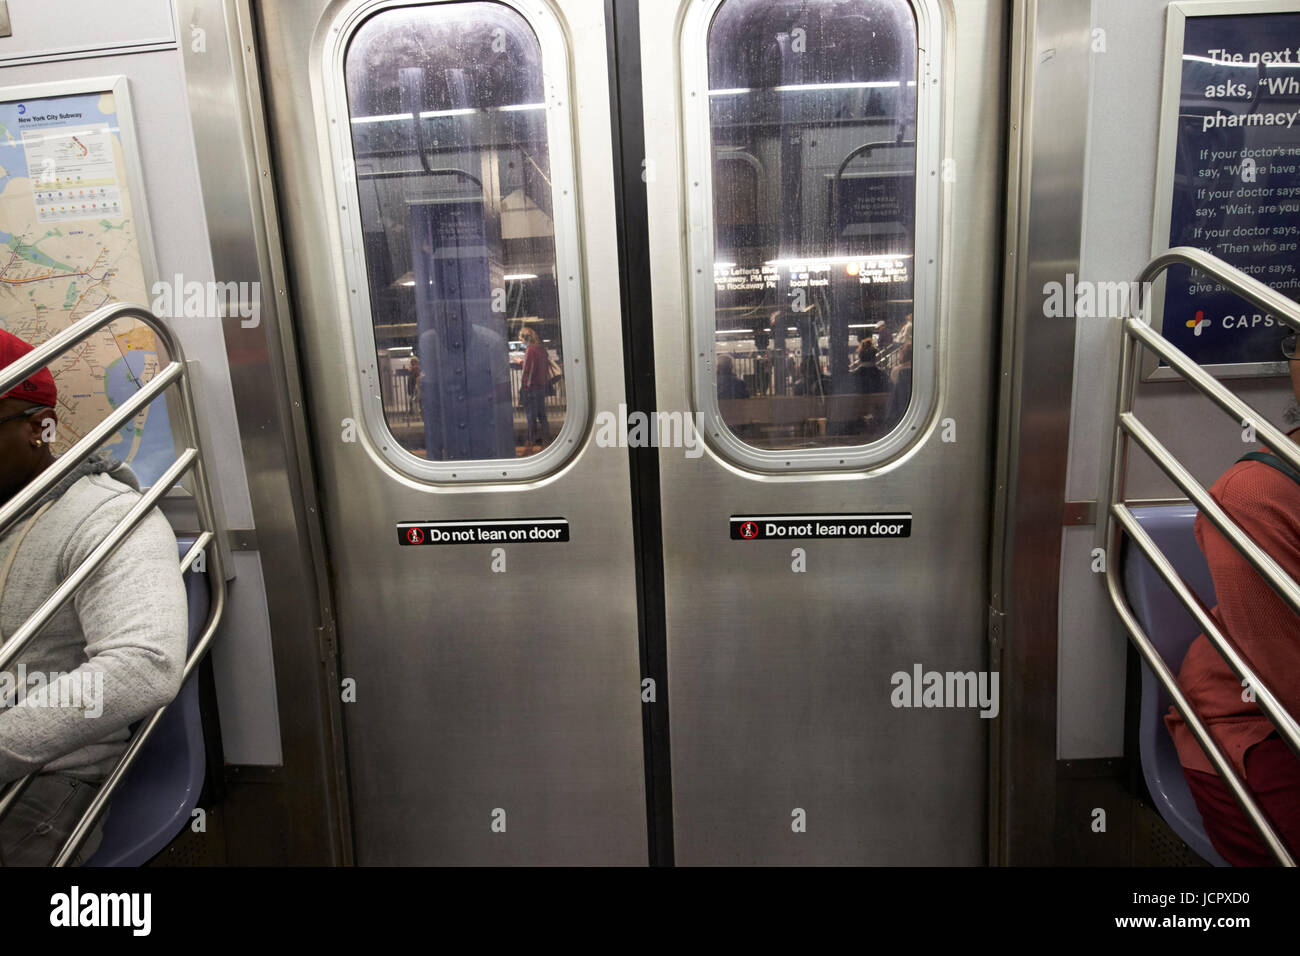 closed doors on board carriage of new york subway c line train New York City USA - Stock Image